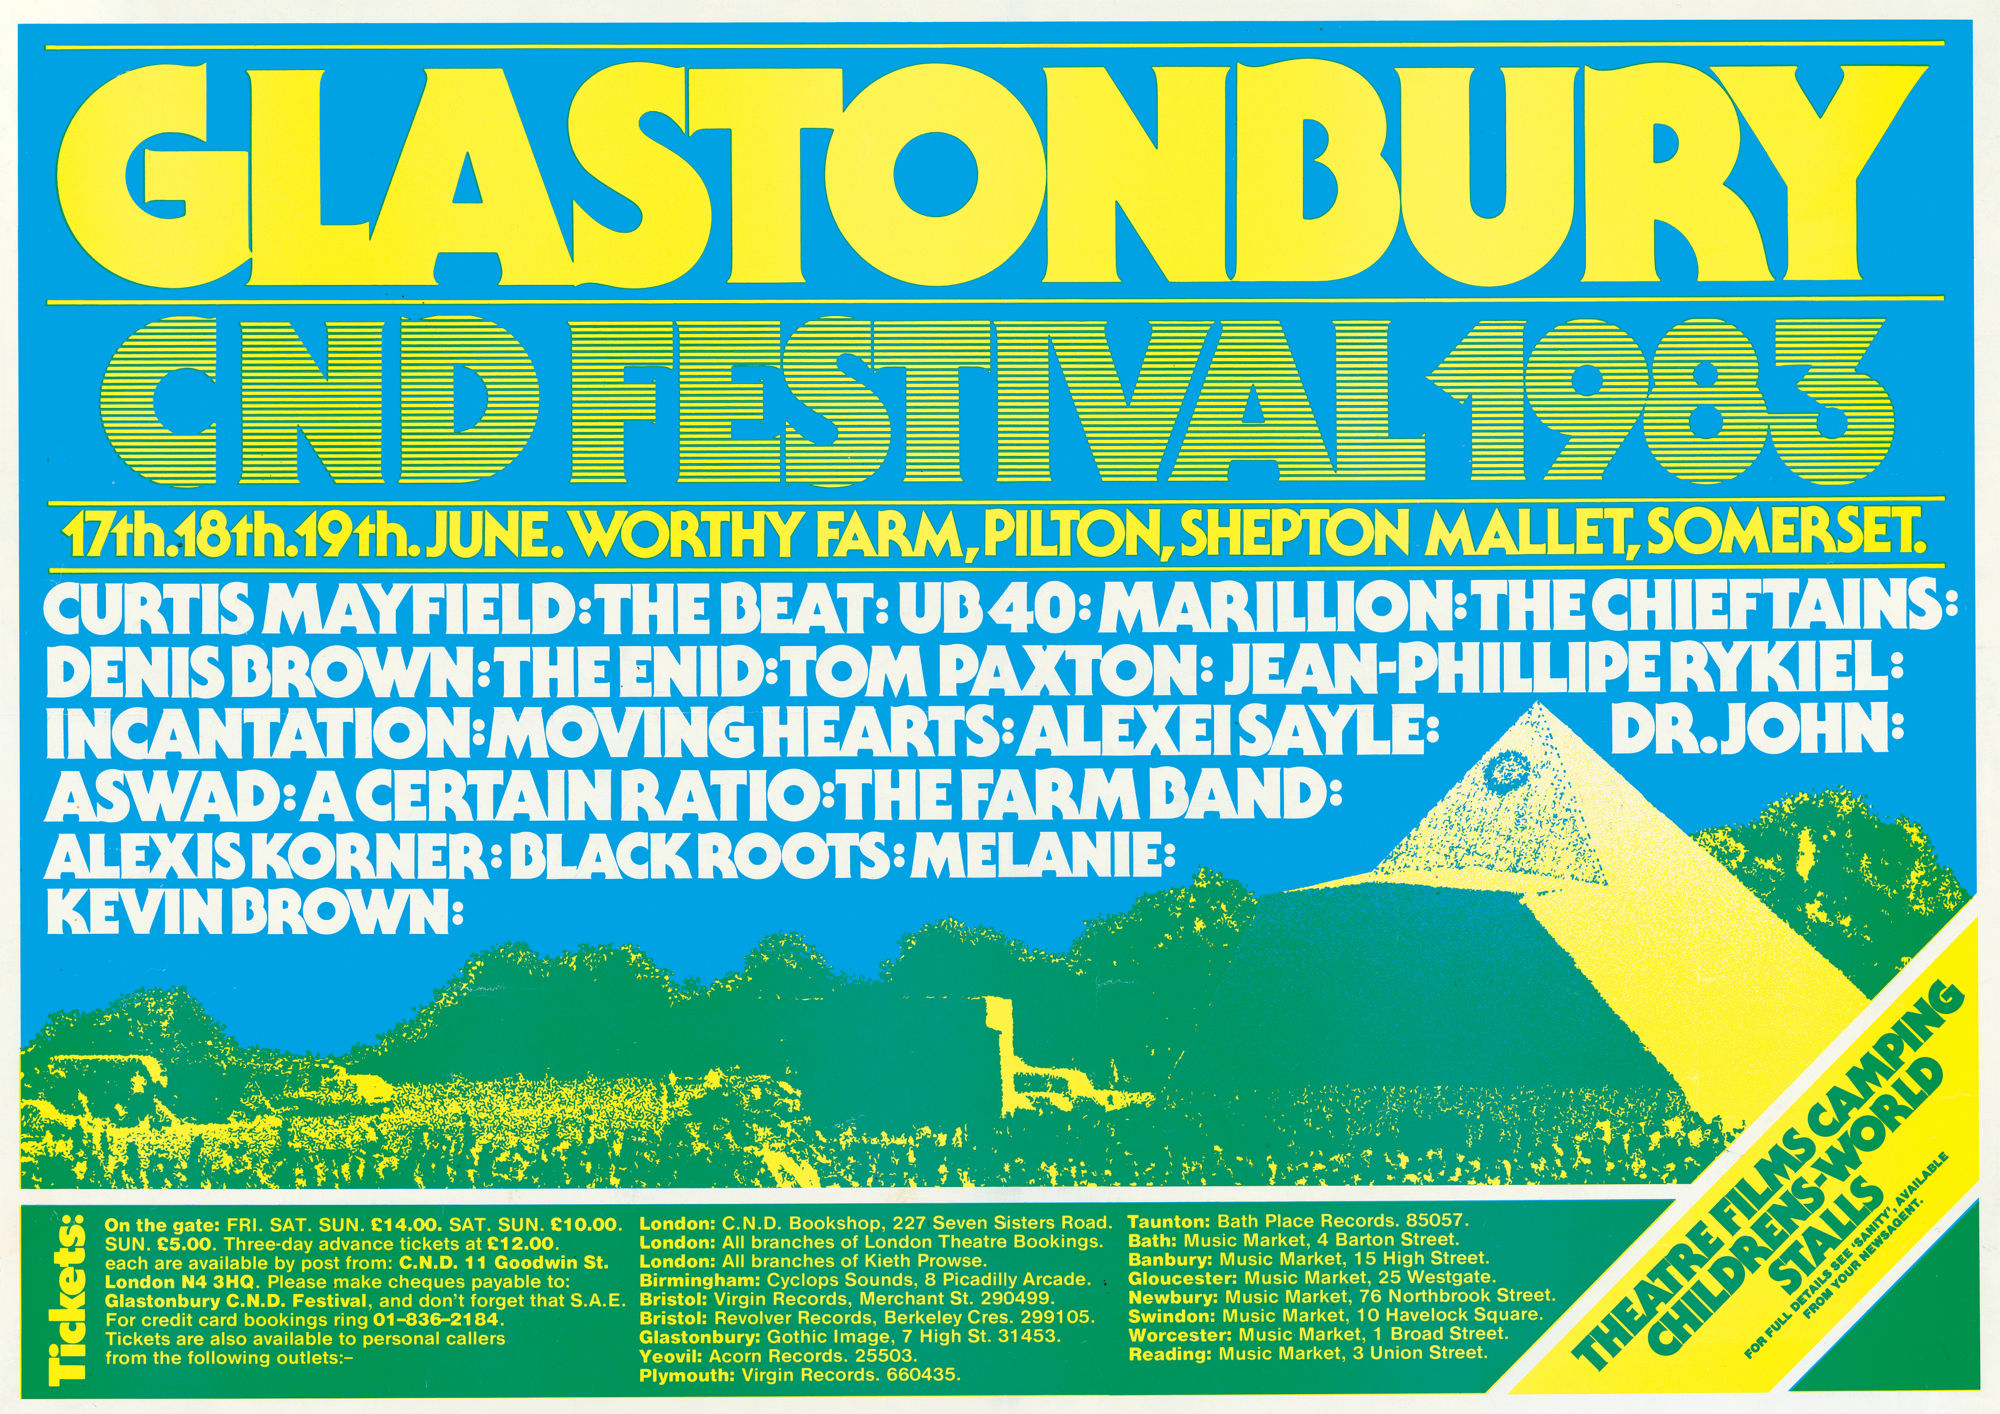 The poster for Glastonbury's 1983 edition